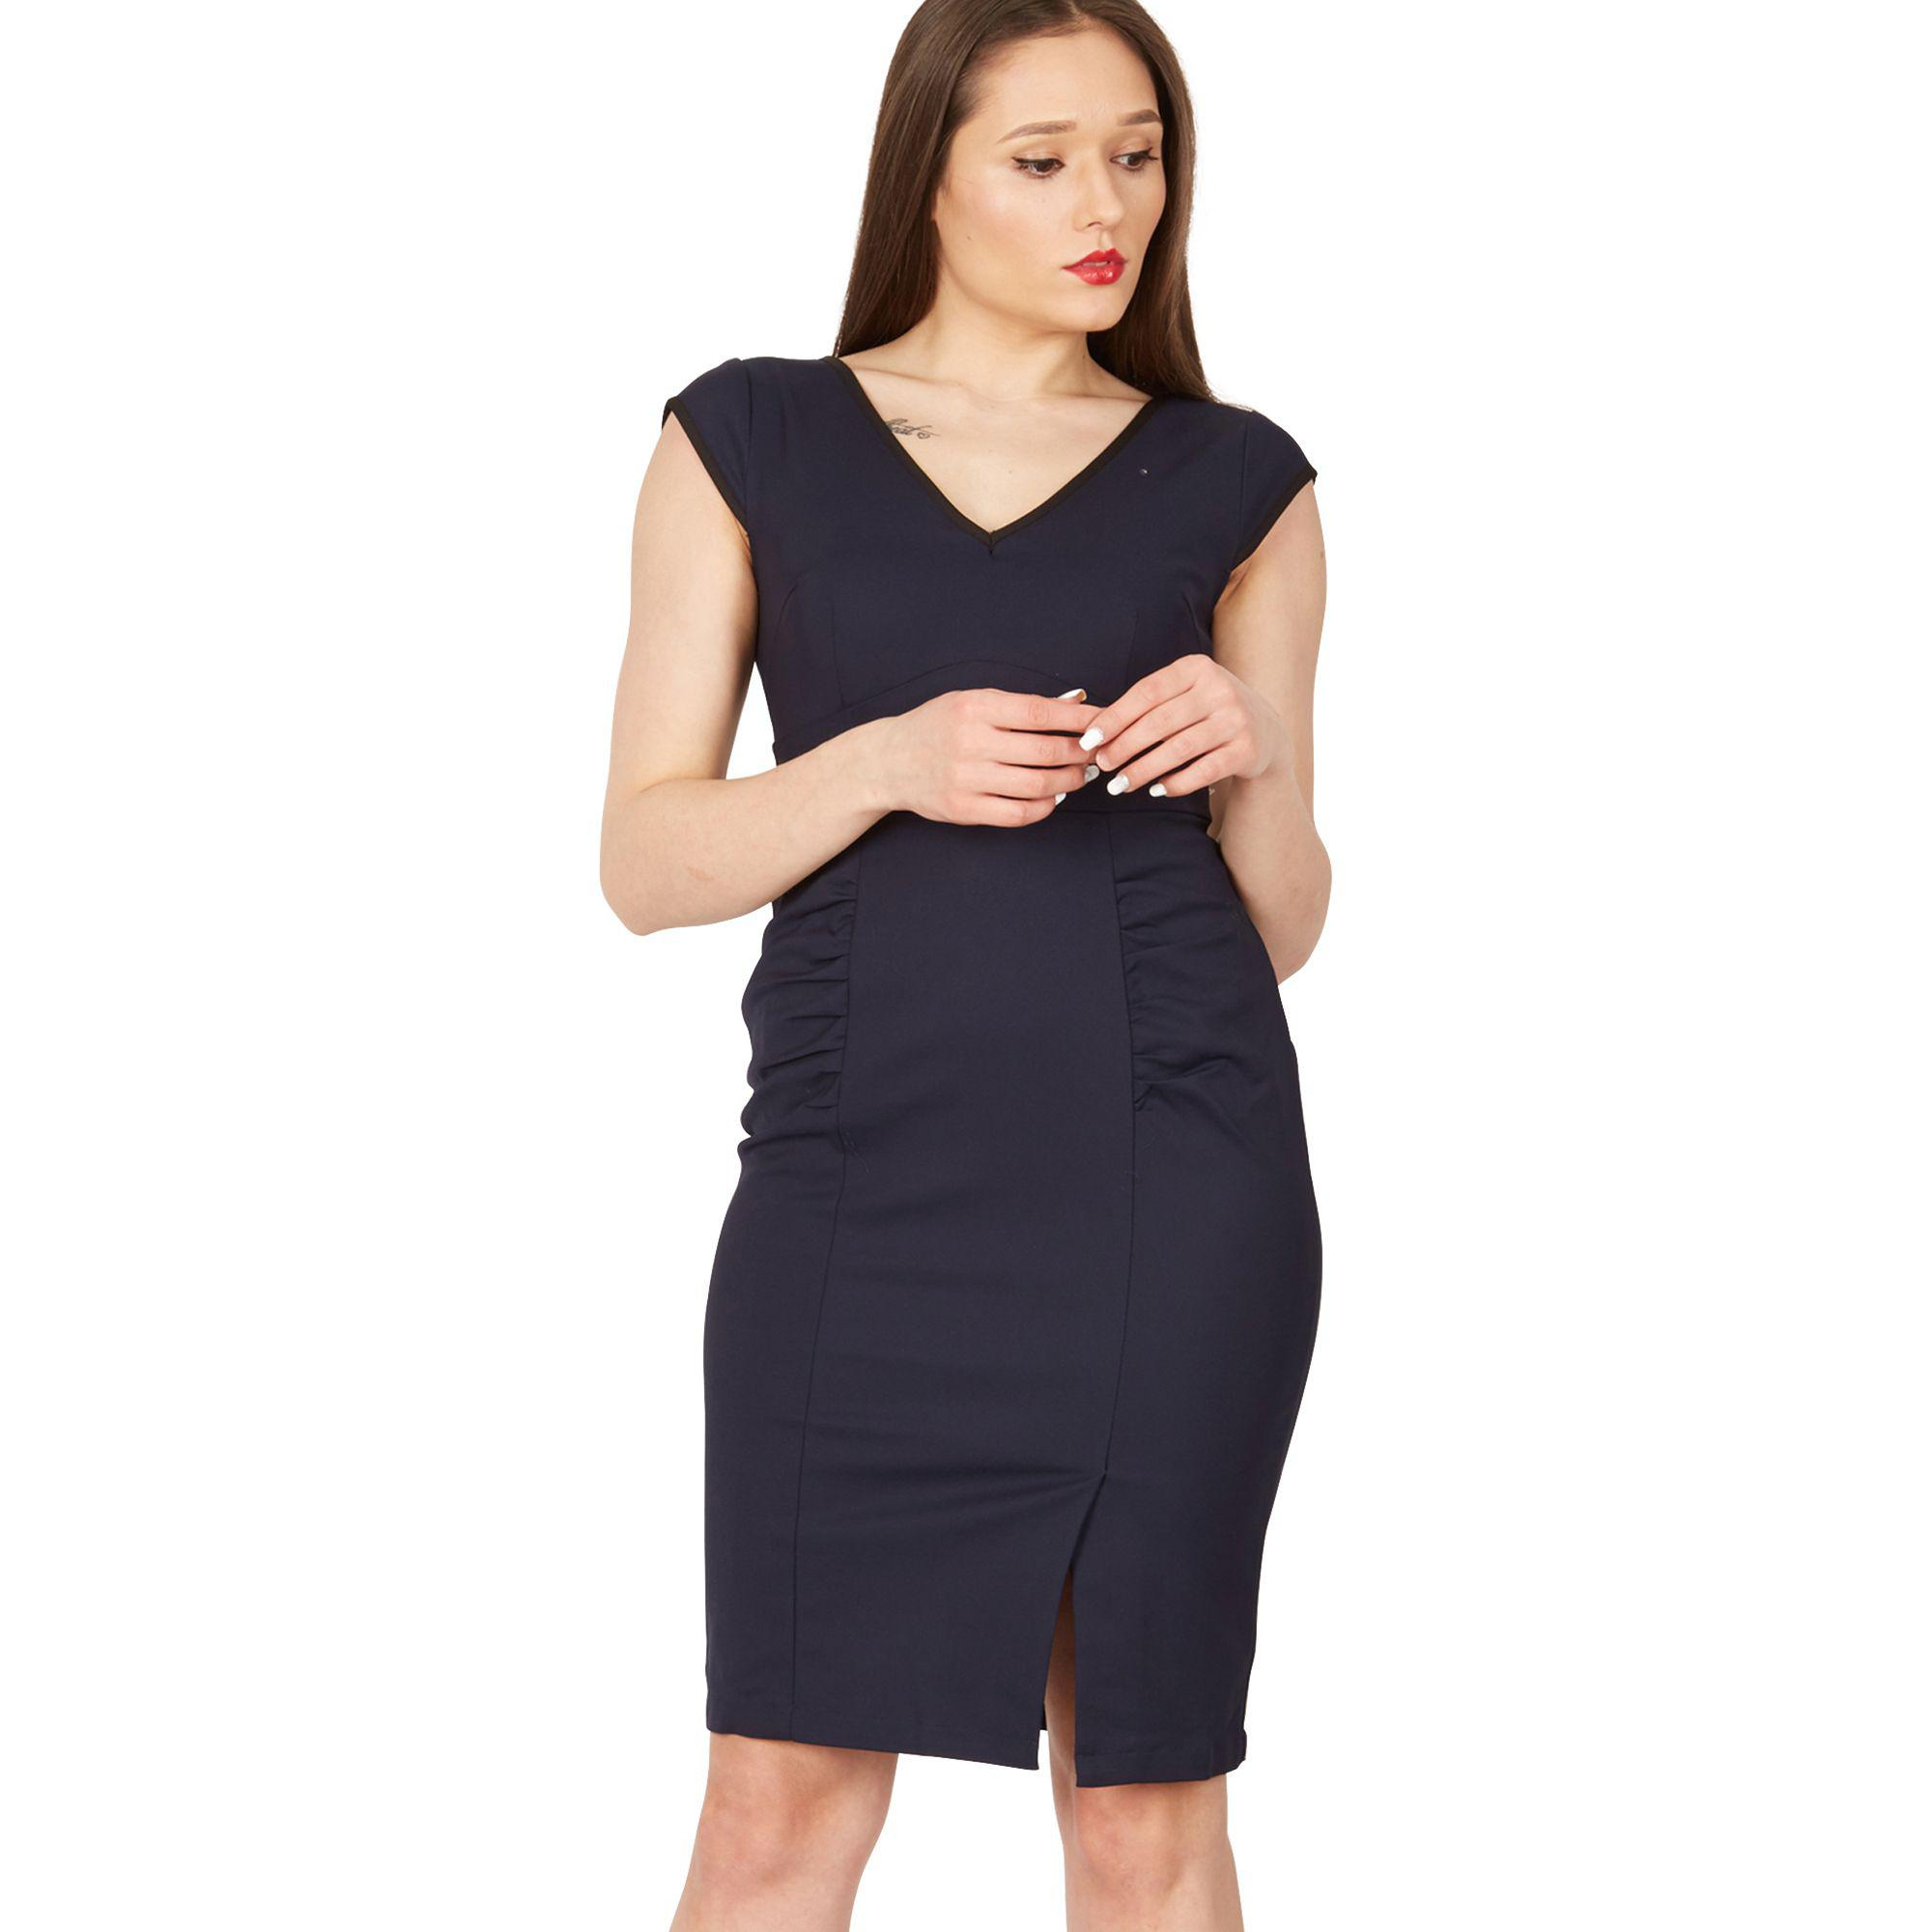 f8b2a62fda Jolie Moi Navy Trimmed V Neck Cap Sleeve Bodycon Dress in Blue - Lyst